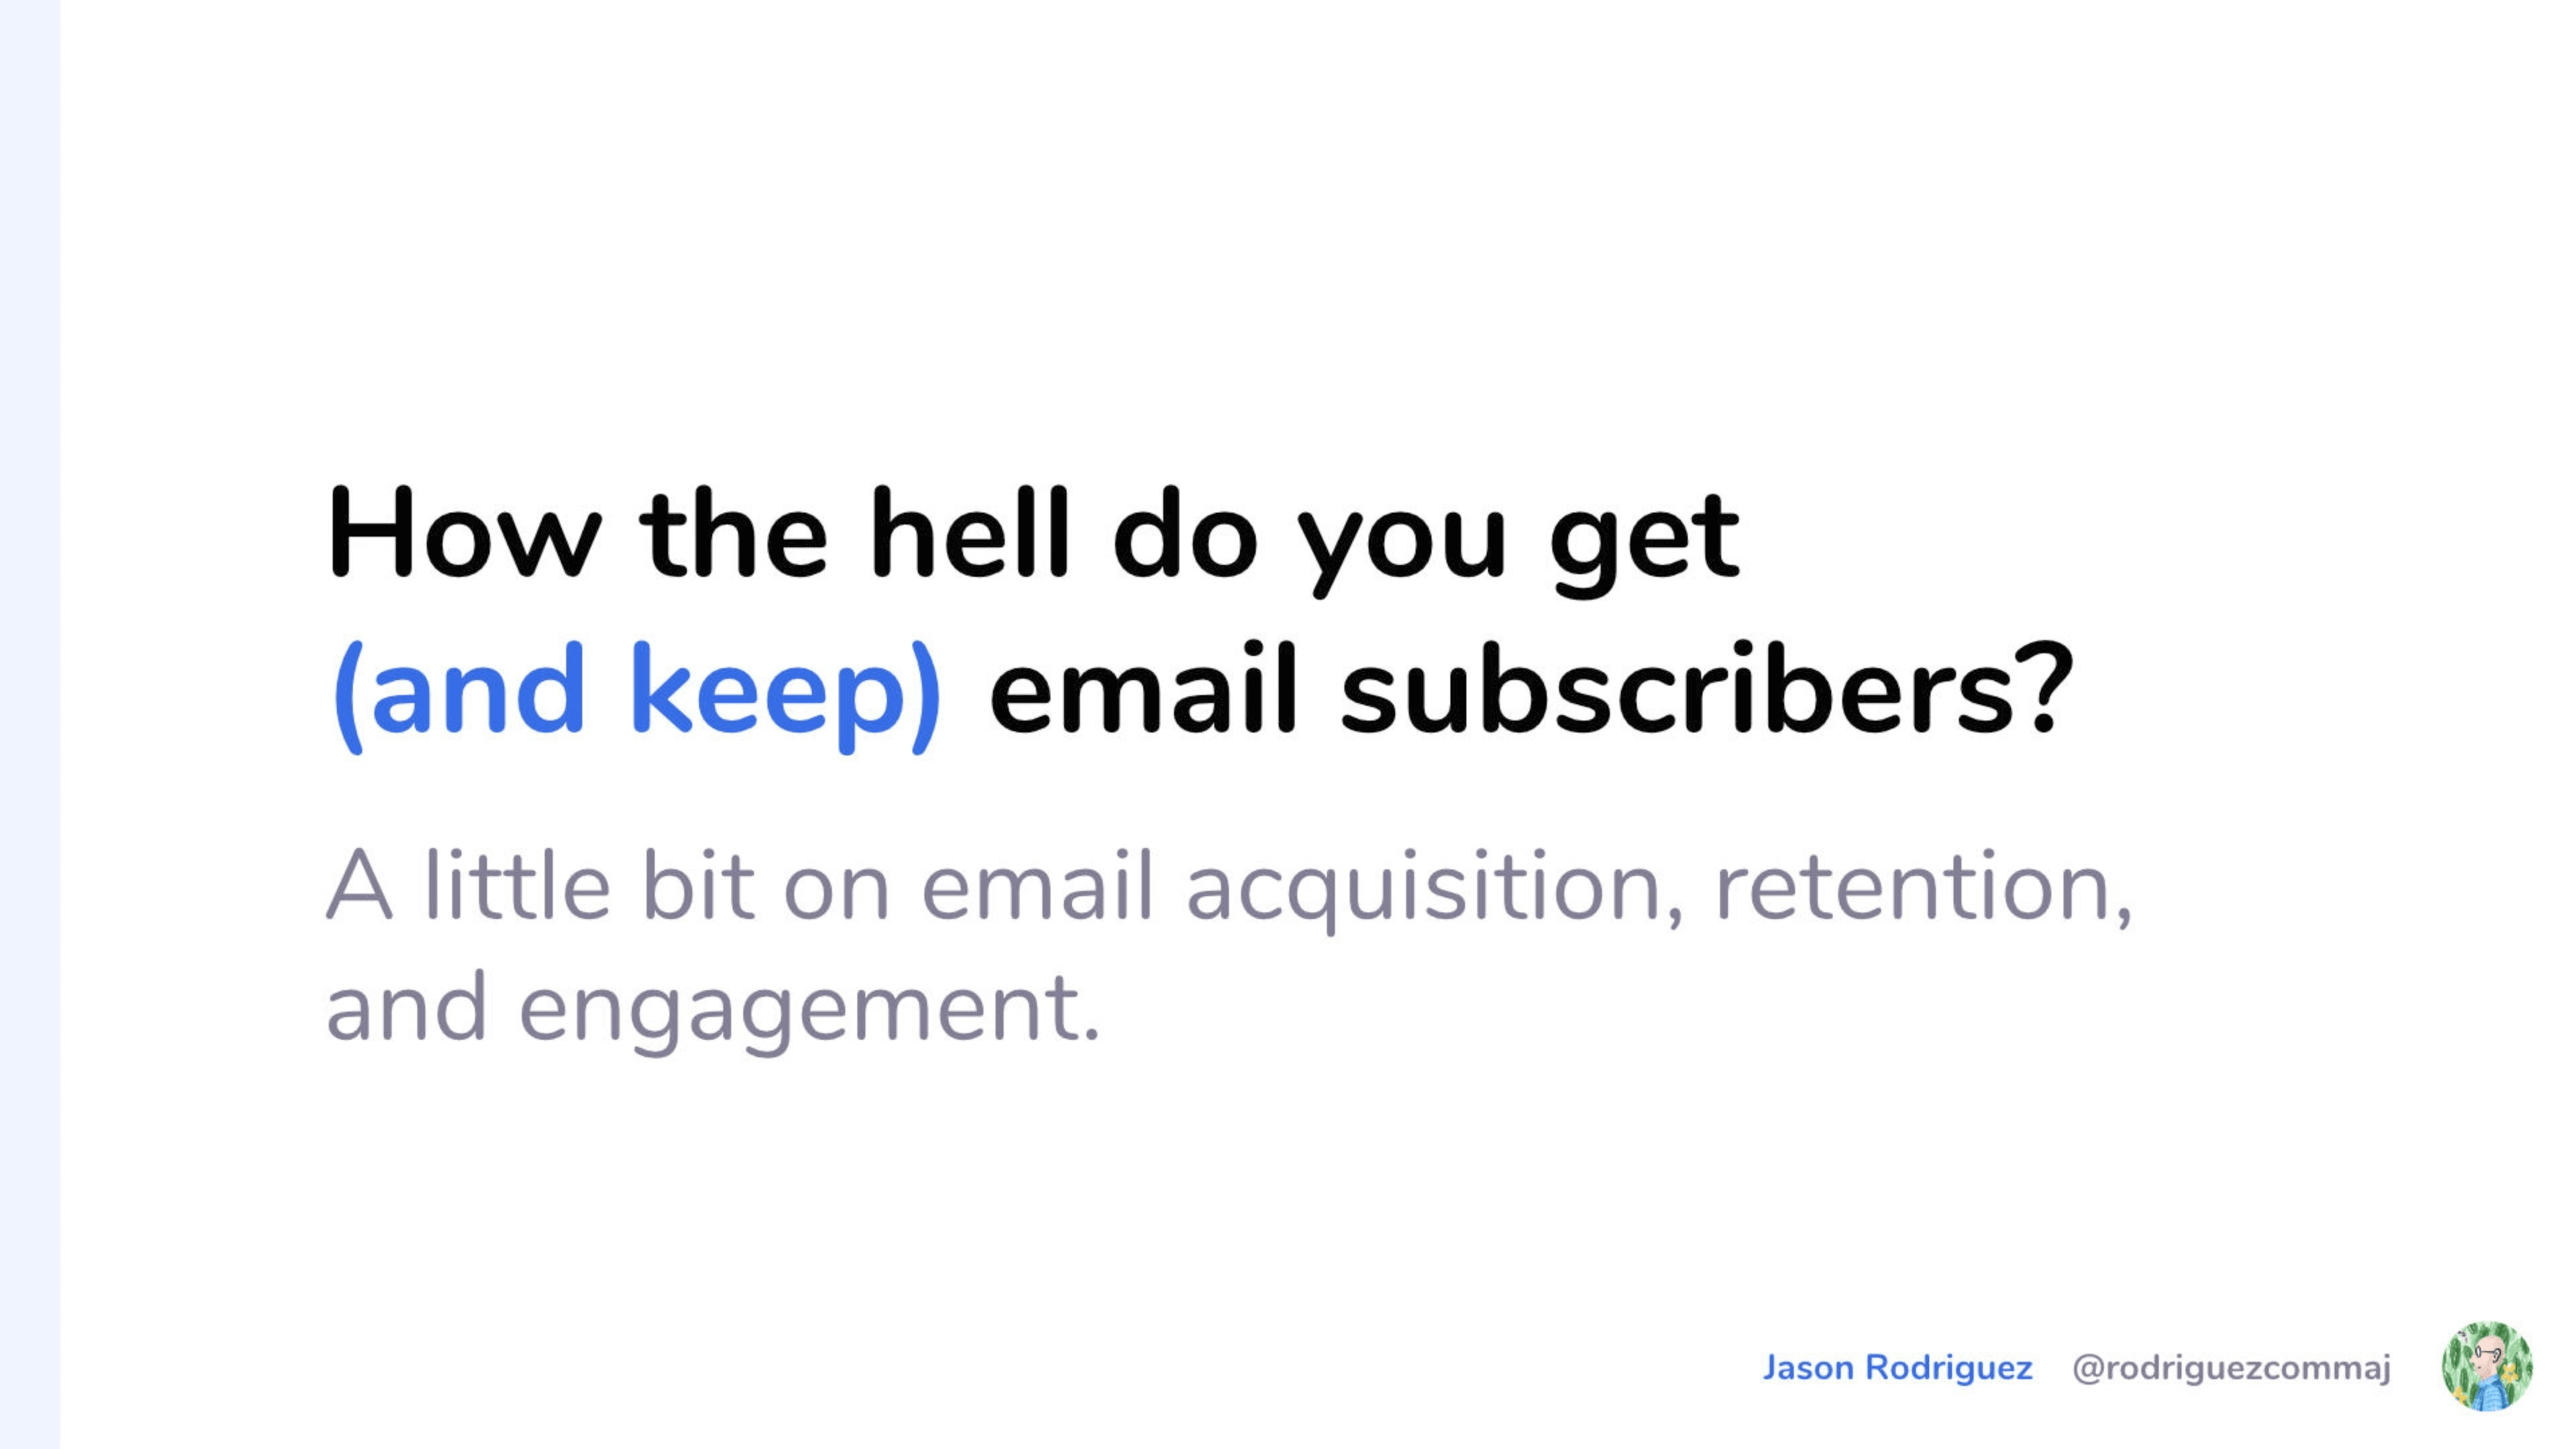 how-the-hell-do-you-get-and-keep-email-subscribers-with-jason-rodriguez